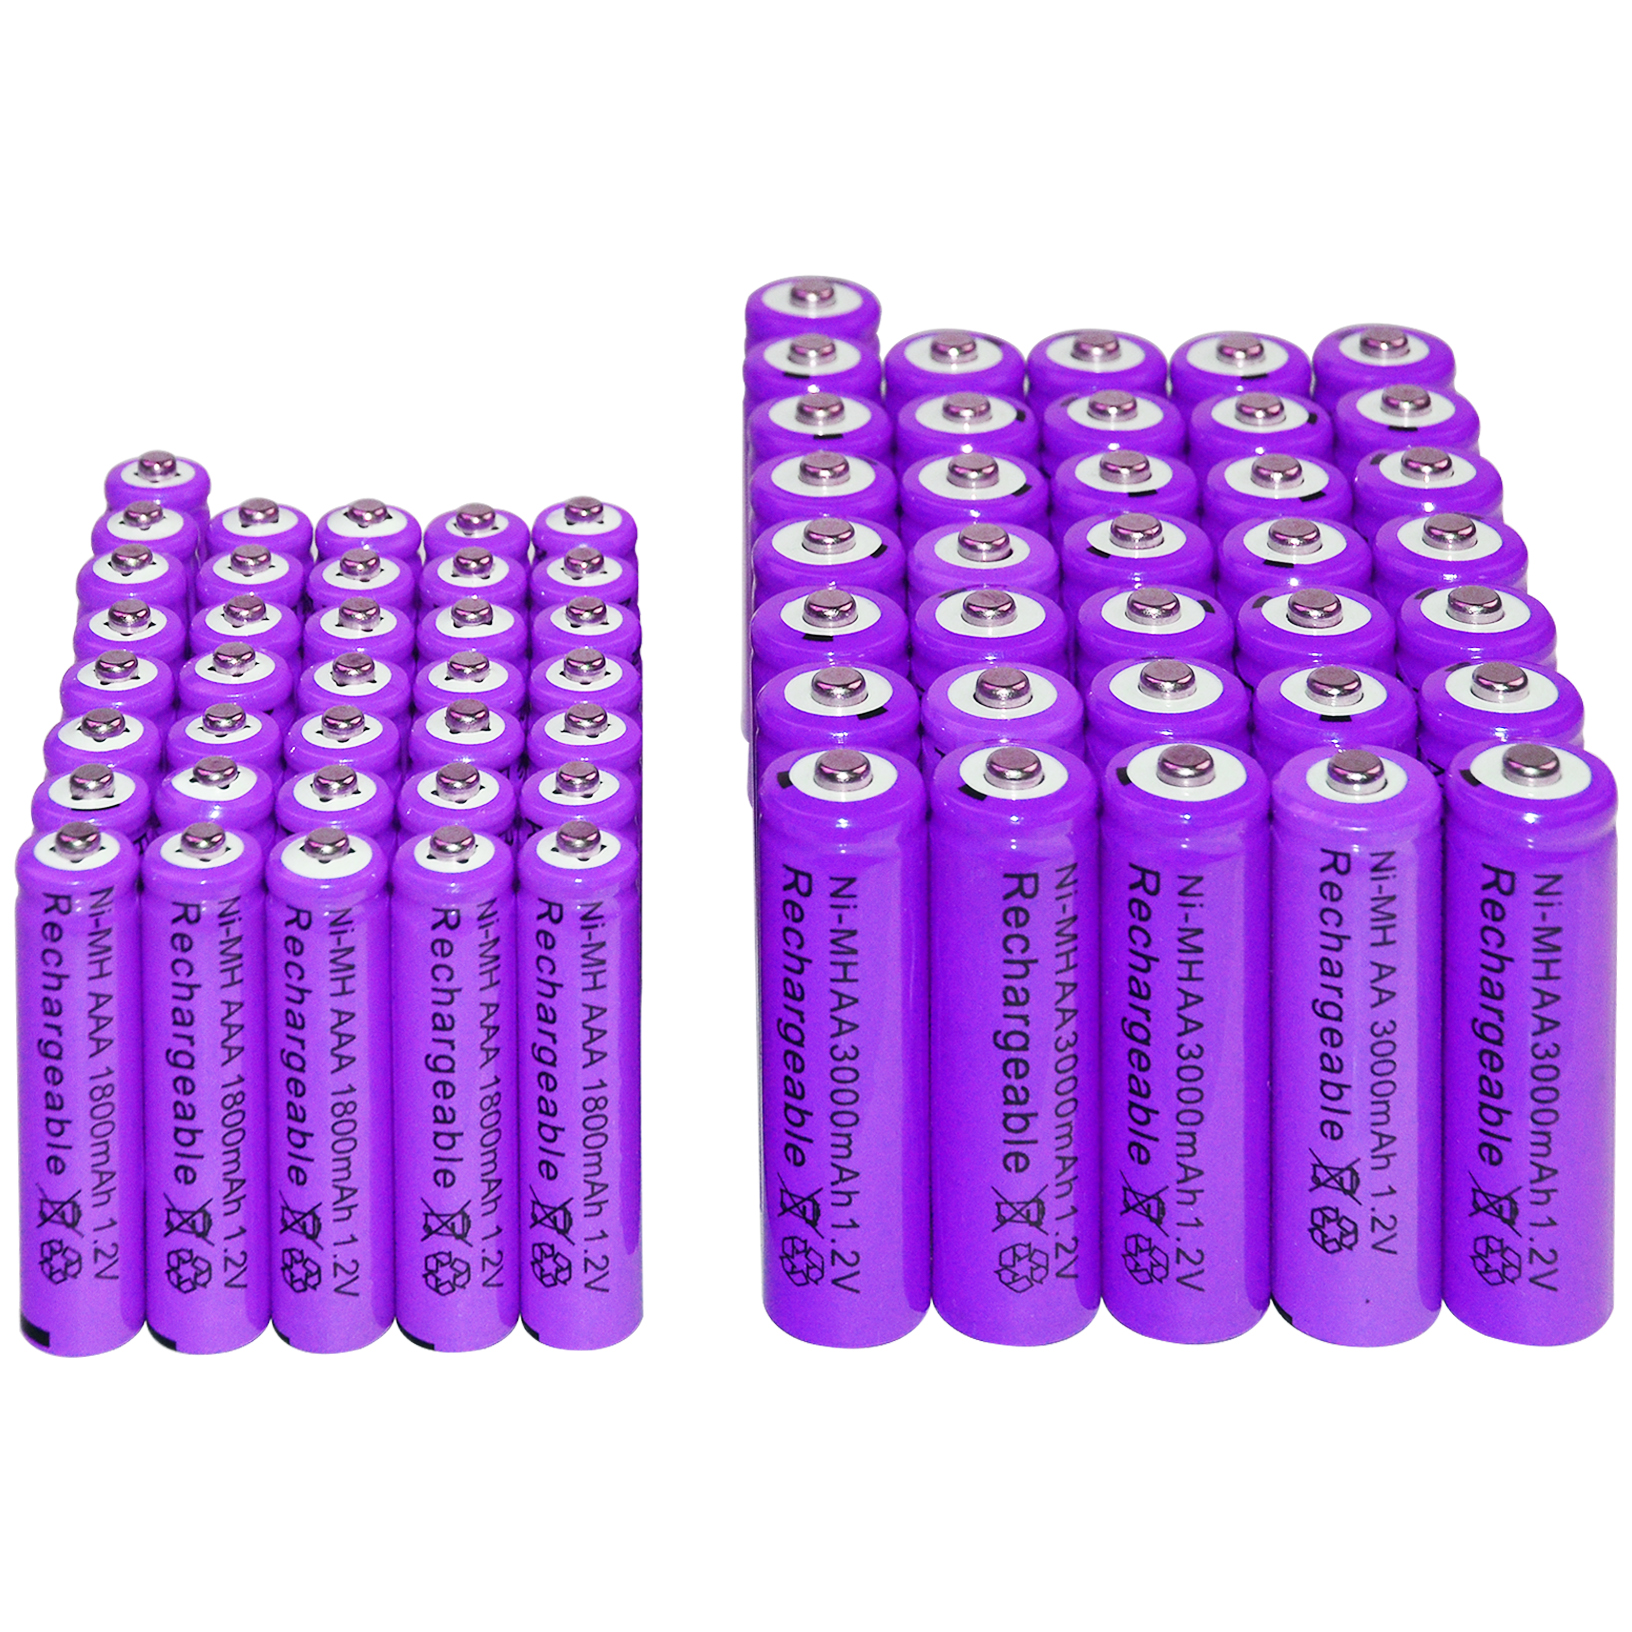 36x AAA 1800 mAh + 36x AA 3000 mAh 1.2 V NI-MH batterie Rechargeable piles pour jouets violet